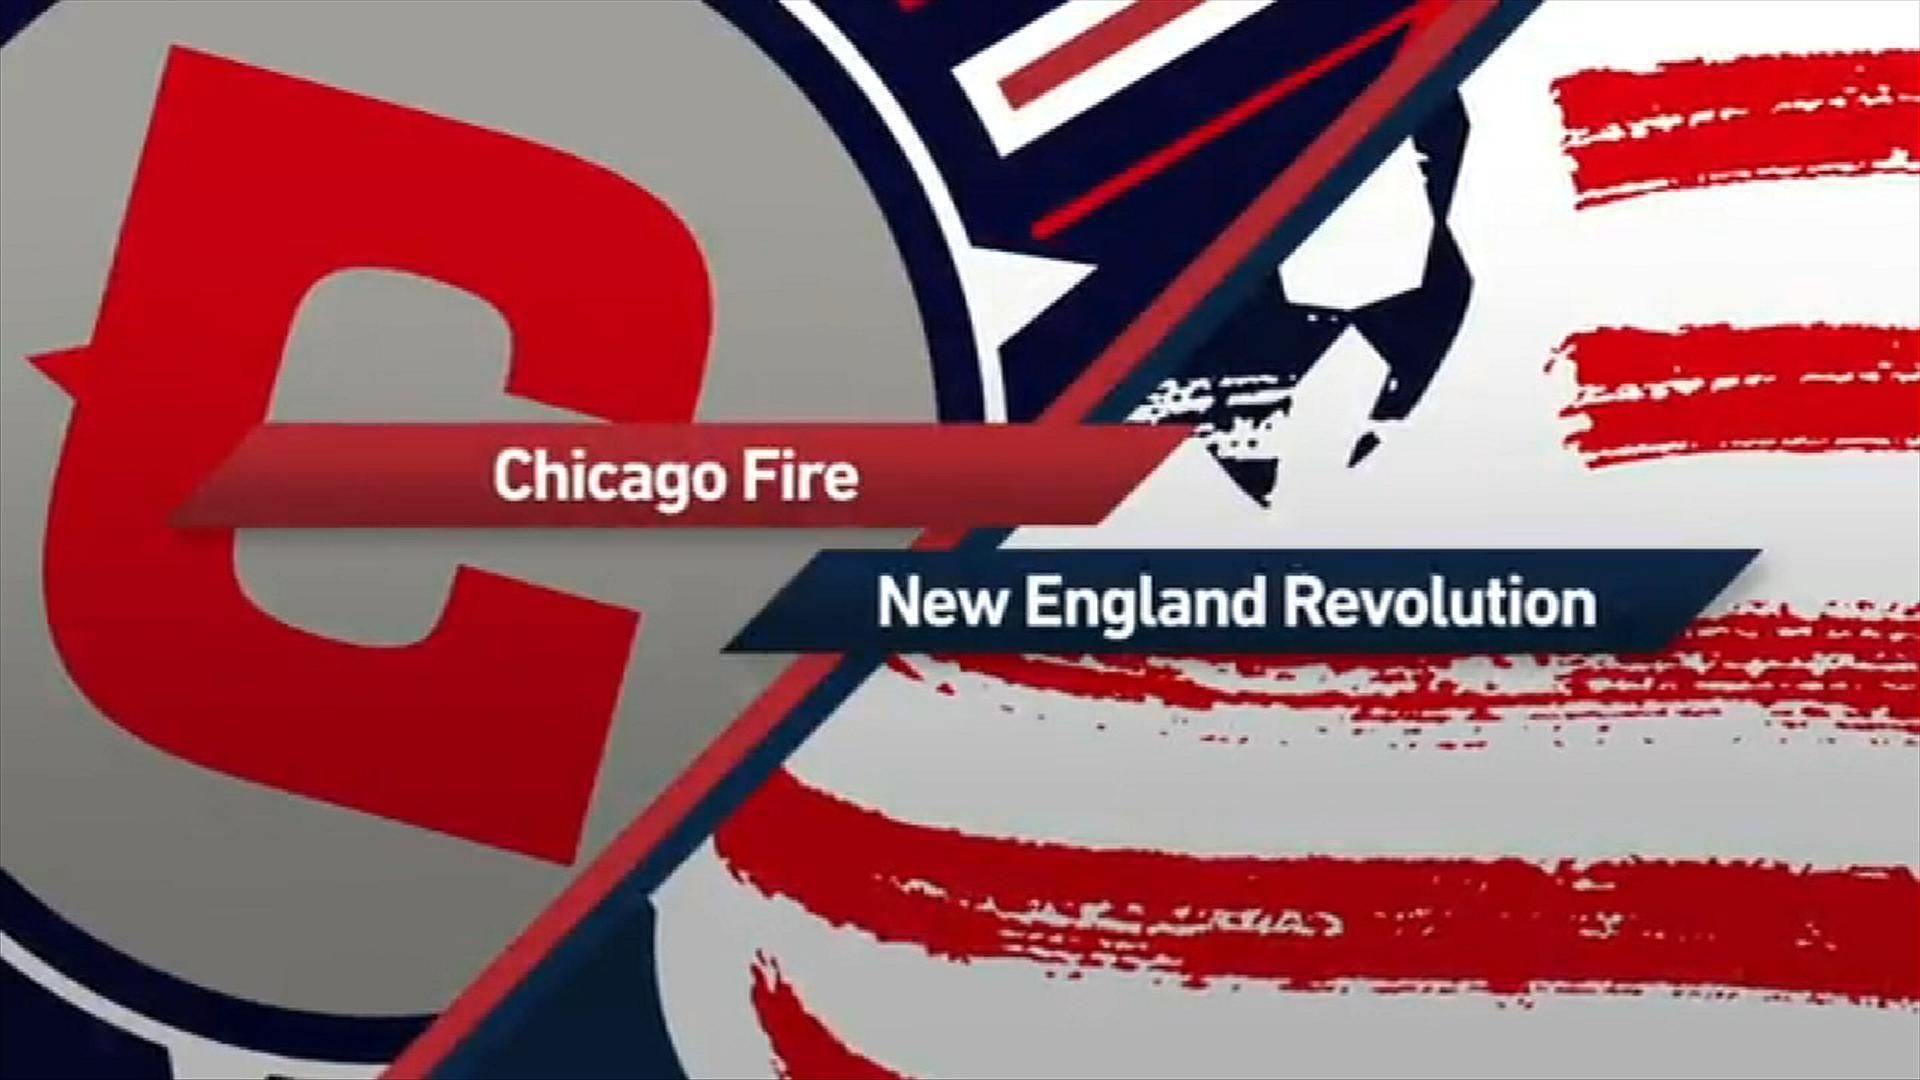 Chicago 3-0 New England: Fire rout Revs - Via MLS